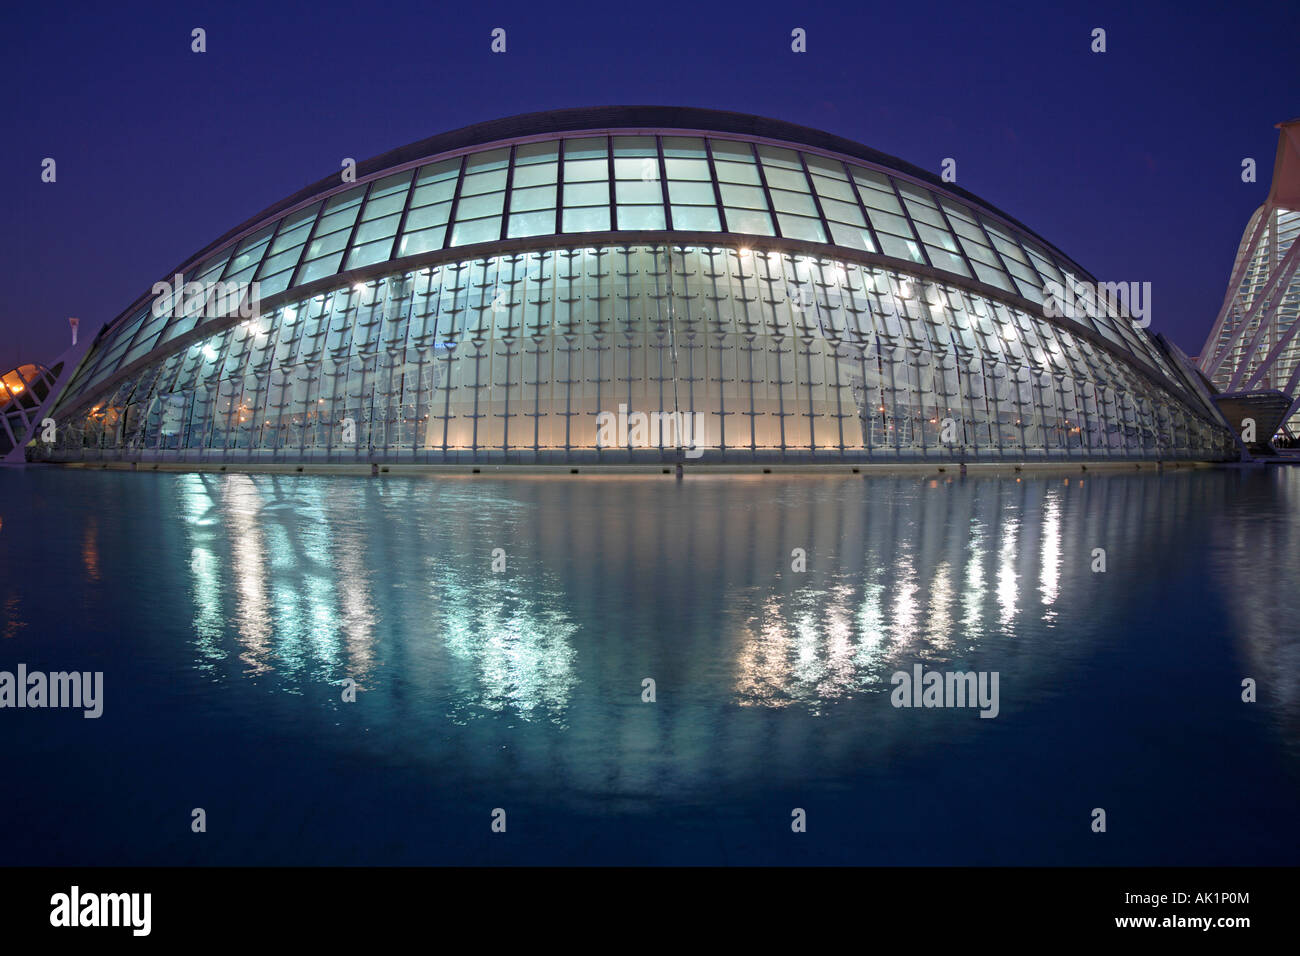 The Hemisferic, City of Arts and Sciences, Valencia, Spain - Stock Image